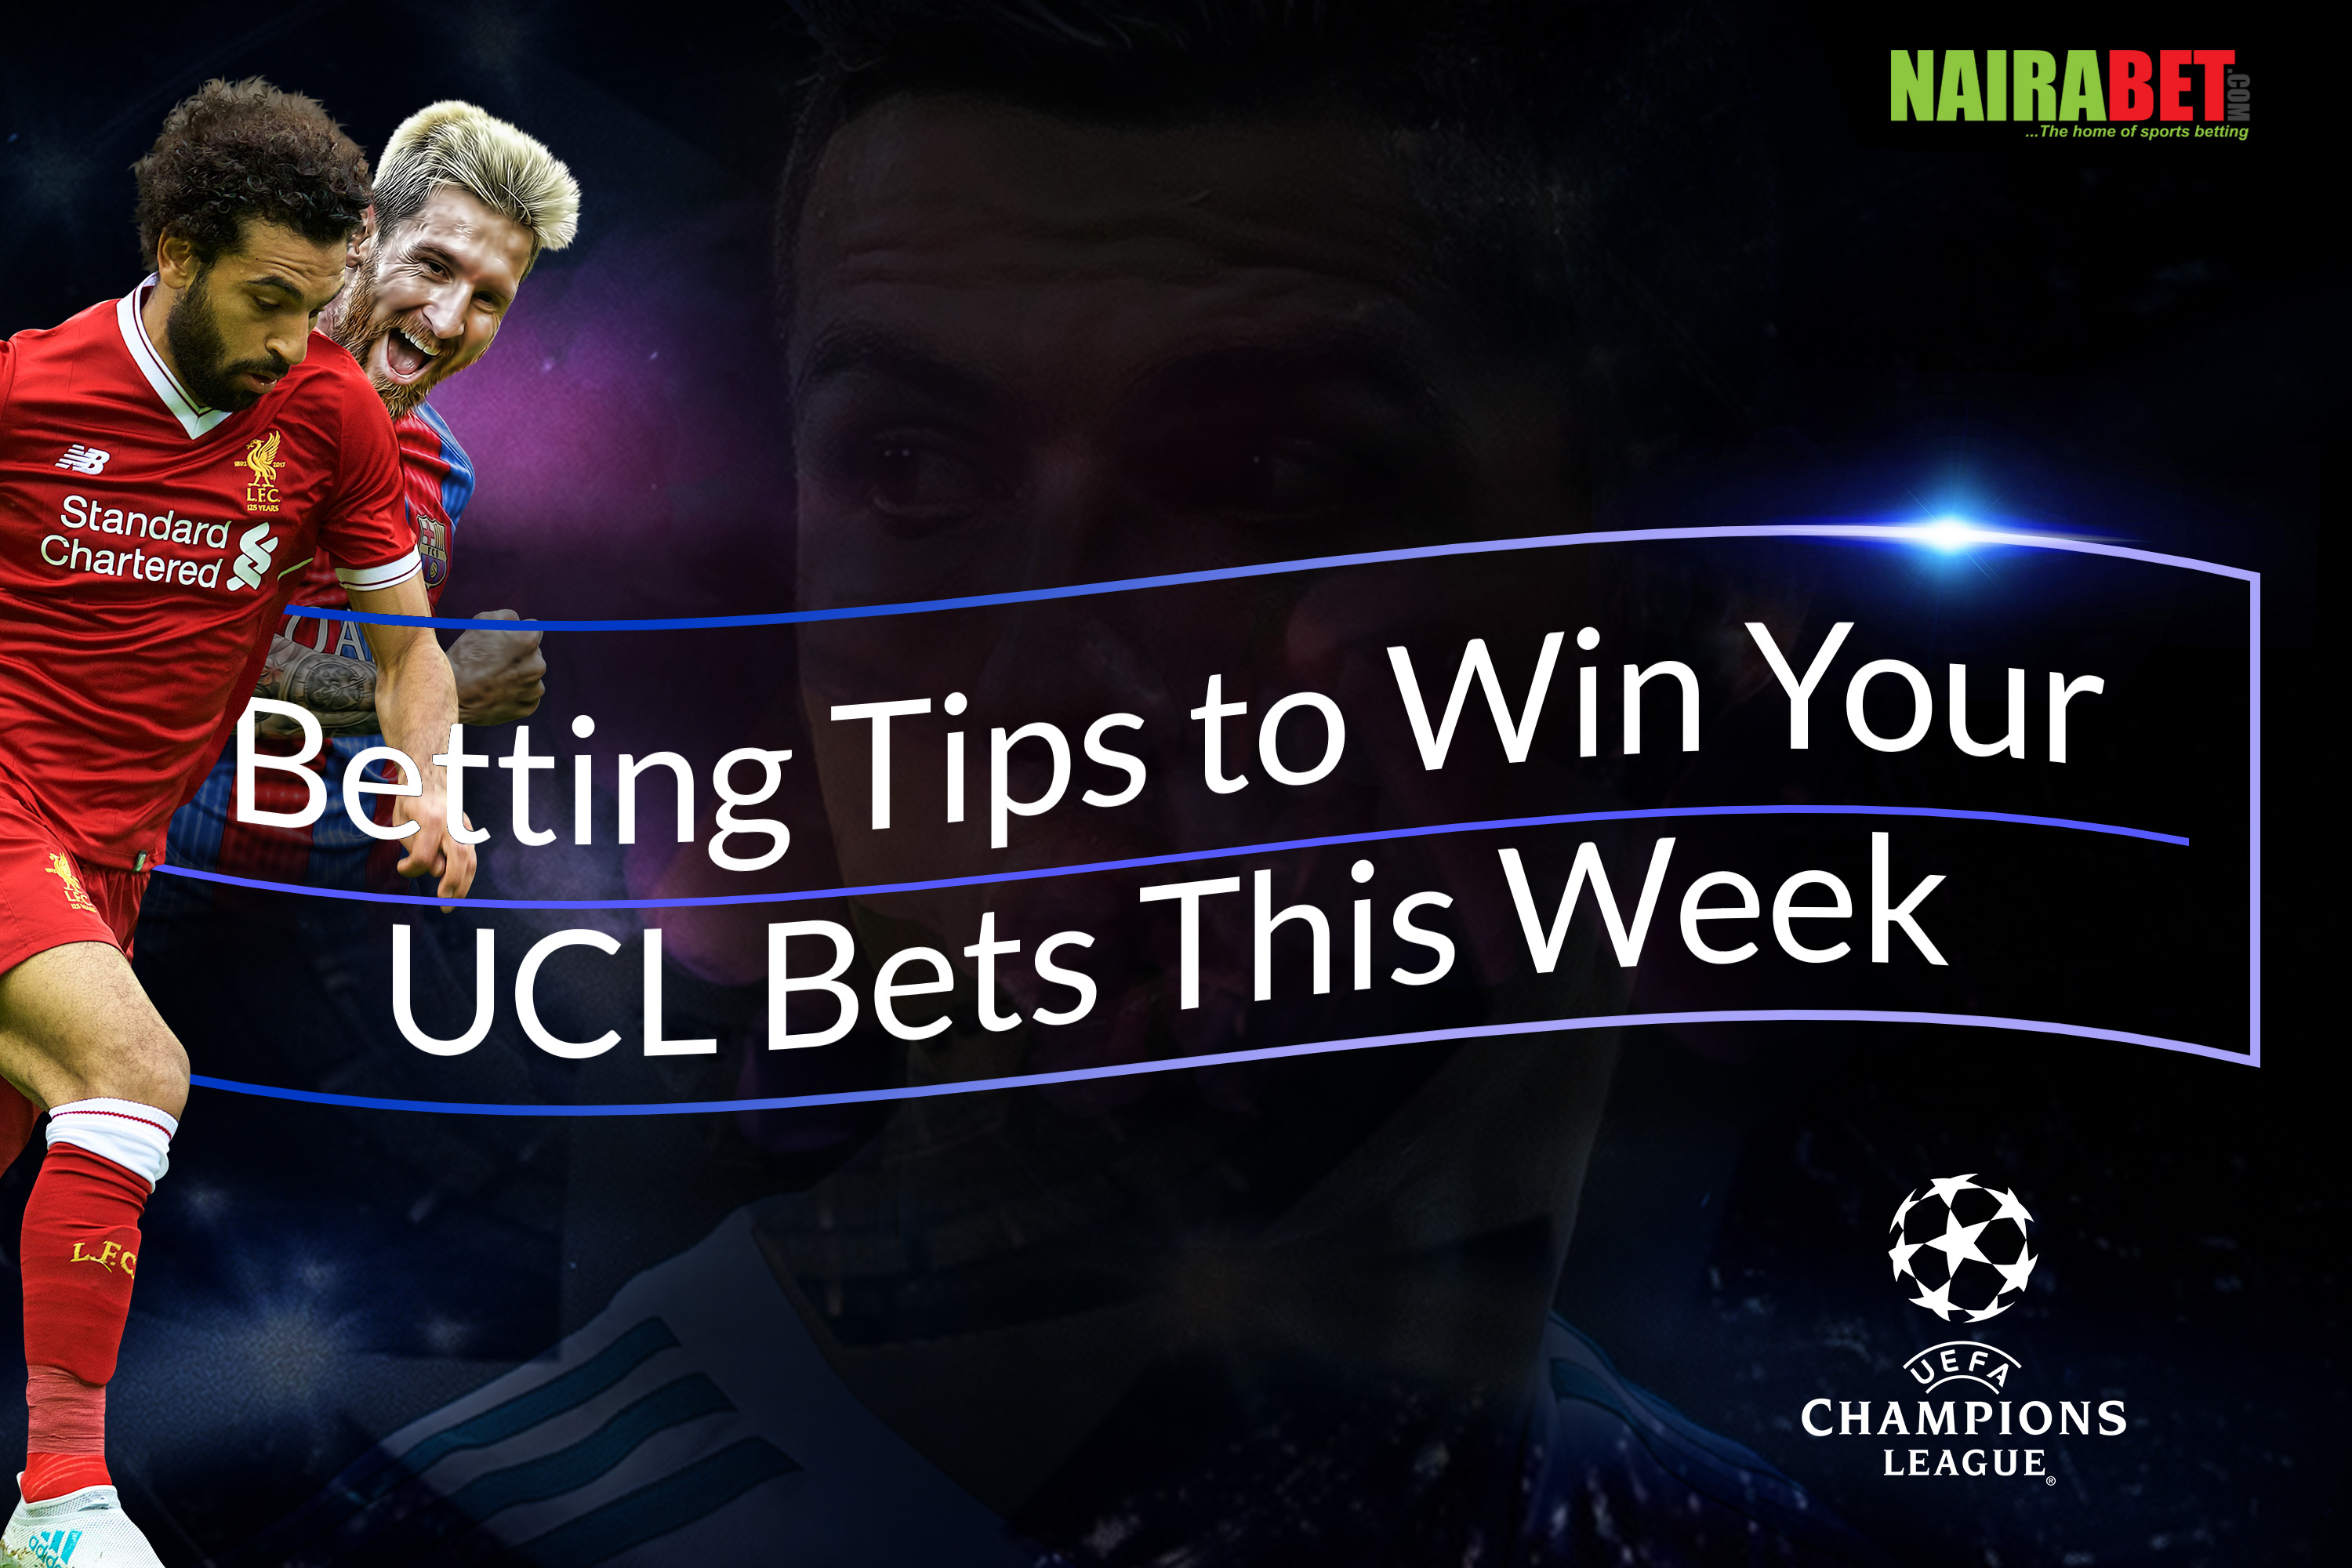 ucl betting tips